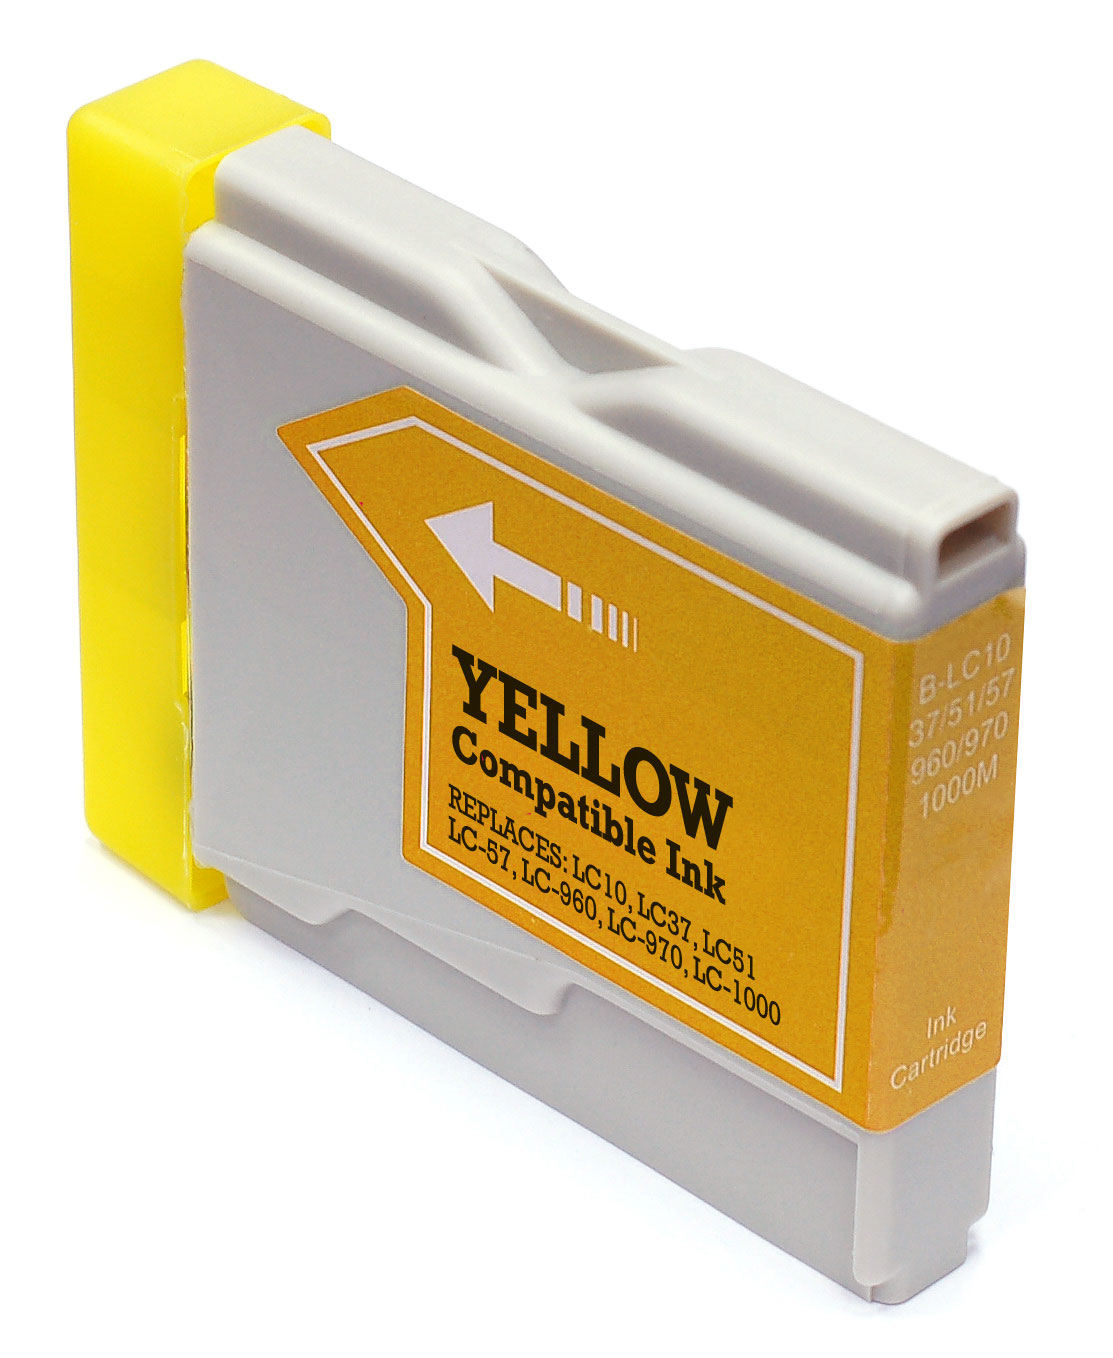 Cartus cerneala Brother LC10, LC37, LC51, LC57, LC960, LC970, LC1000 Yellow, Compatibil